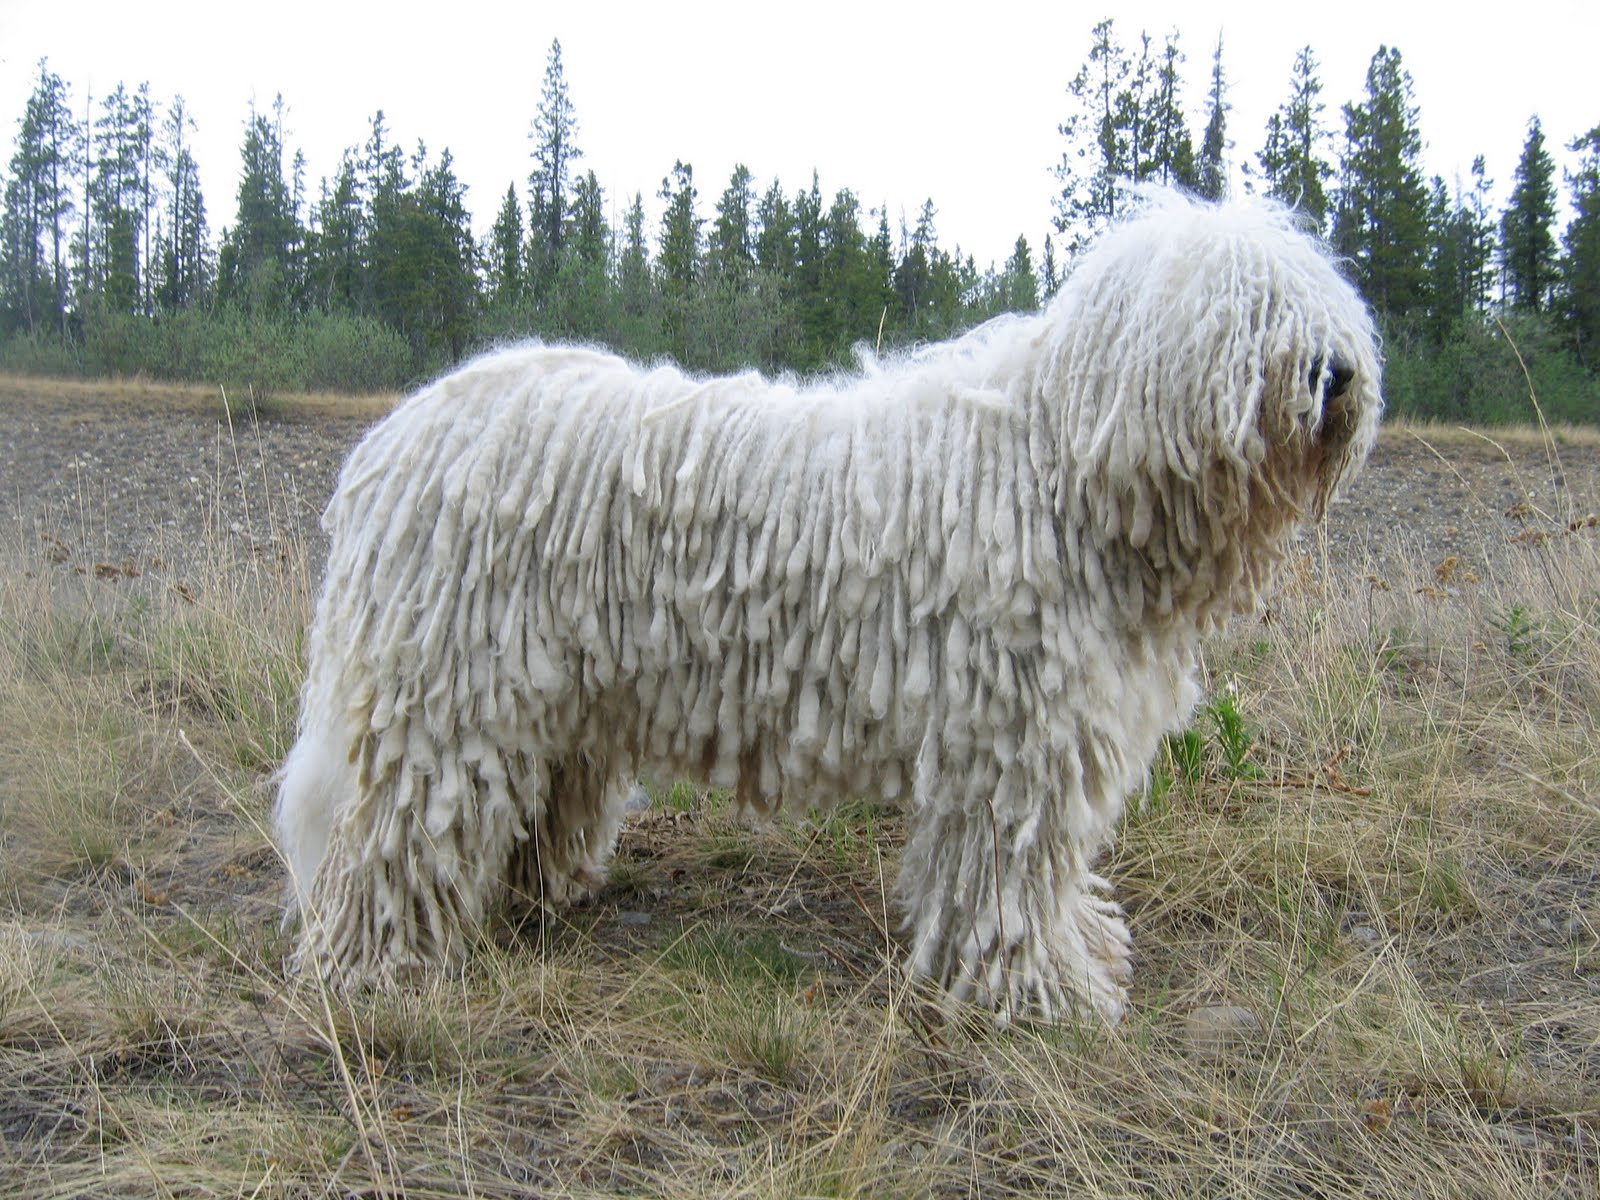 Funny Komondor Dog Photos 2013 | Funny And Cute Animals Komondor Dog Pictures